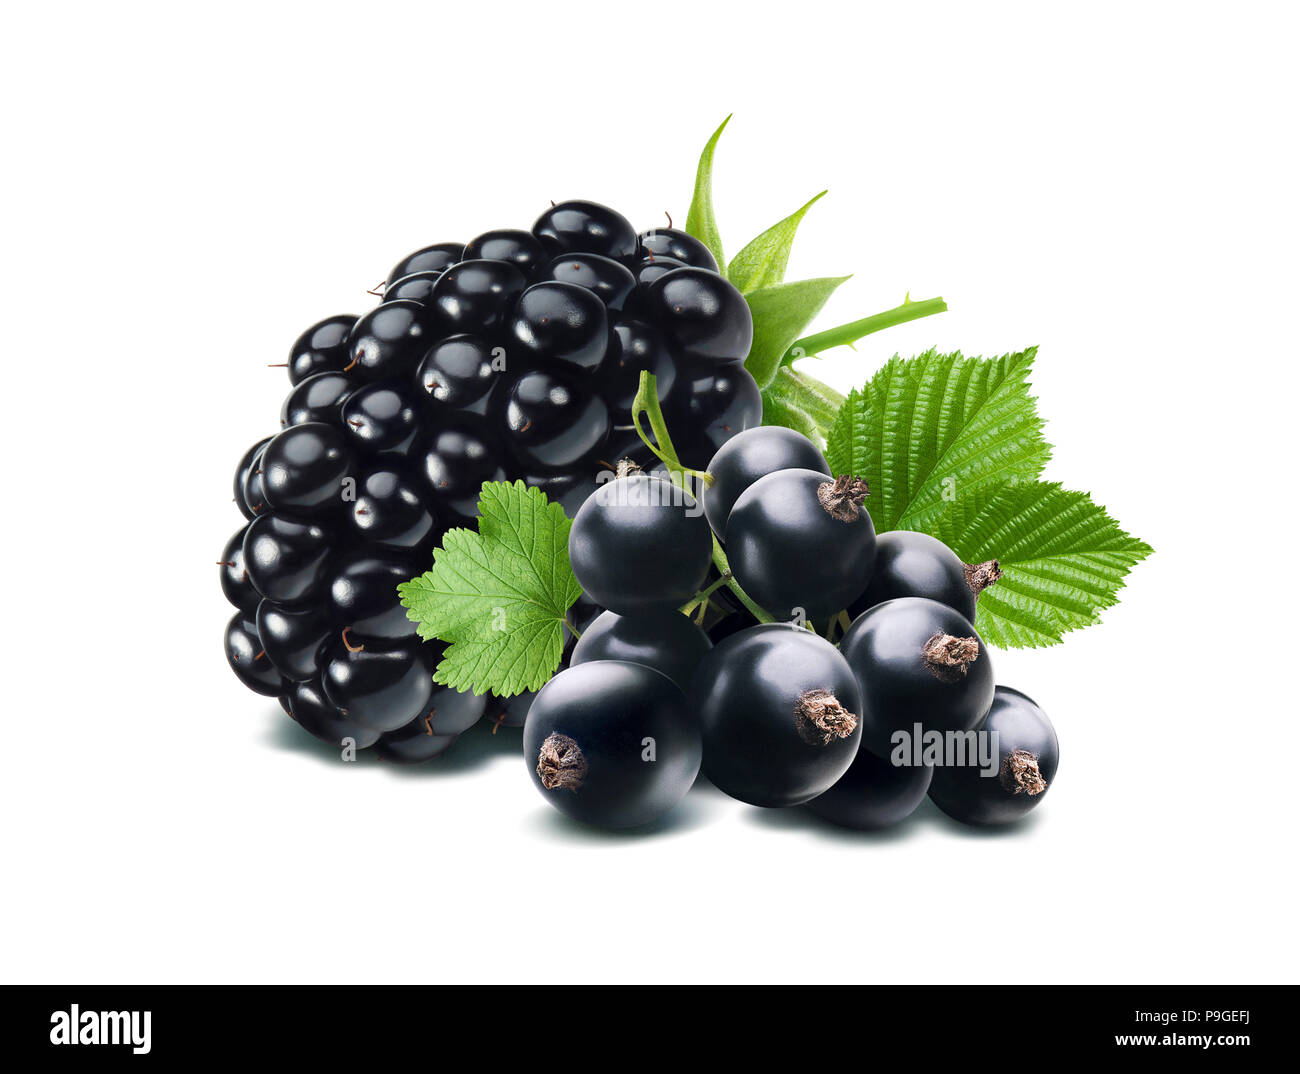 Black currant and blackberry composition isolated on white Stock Photo